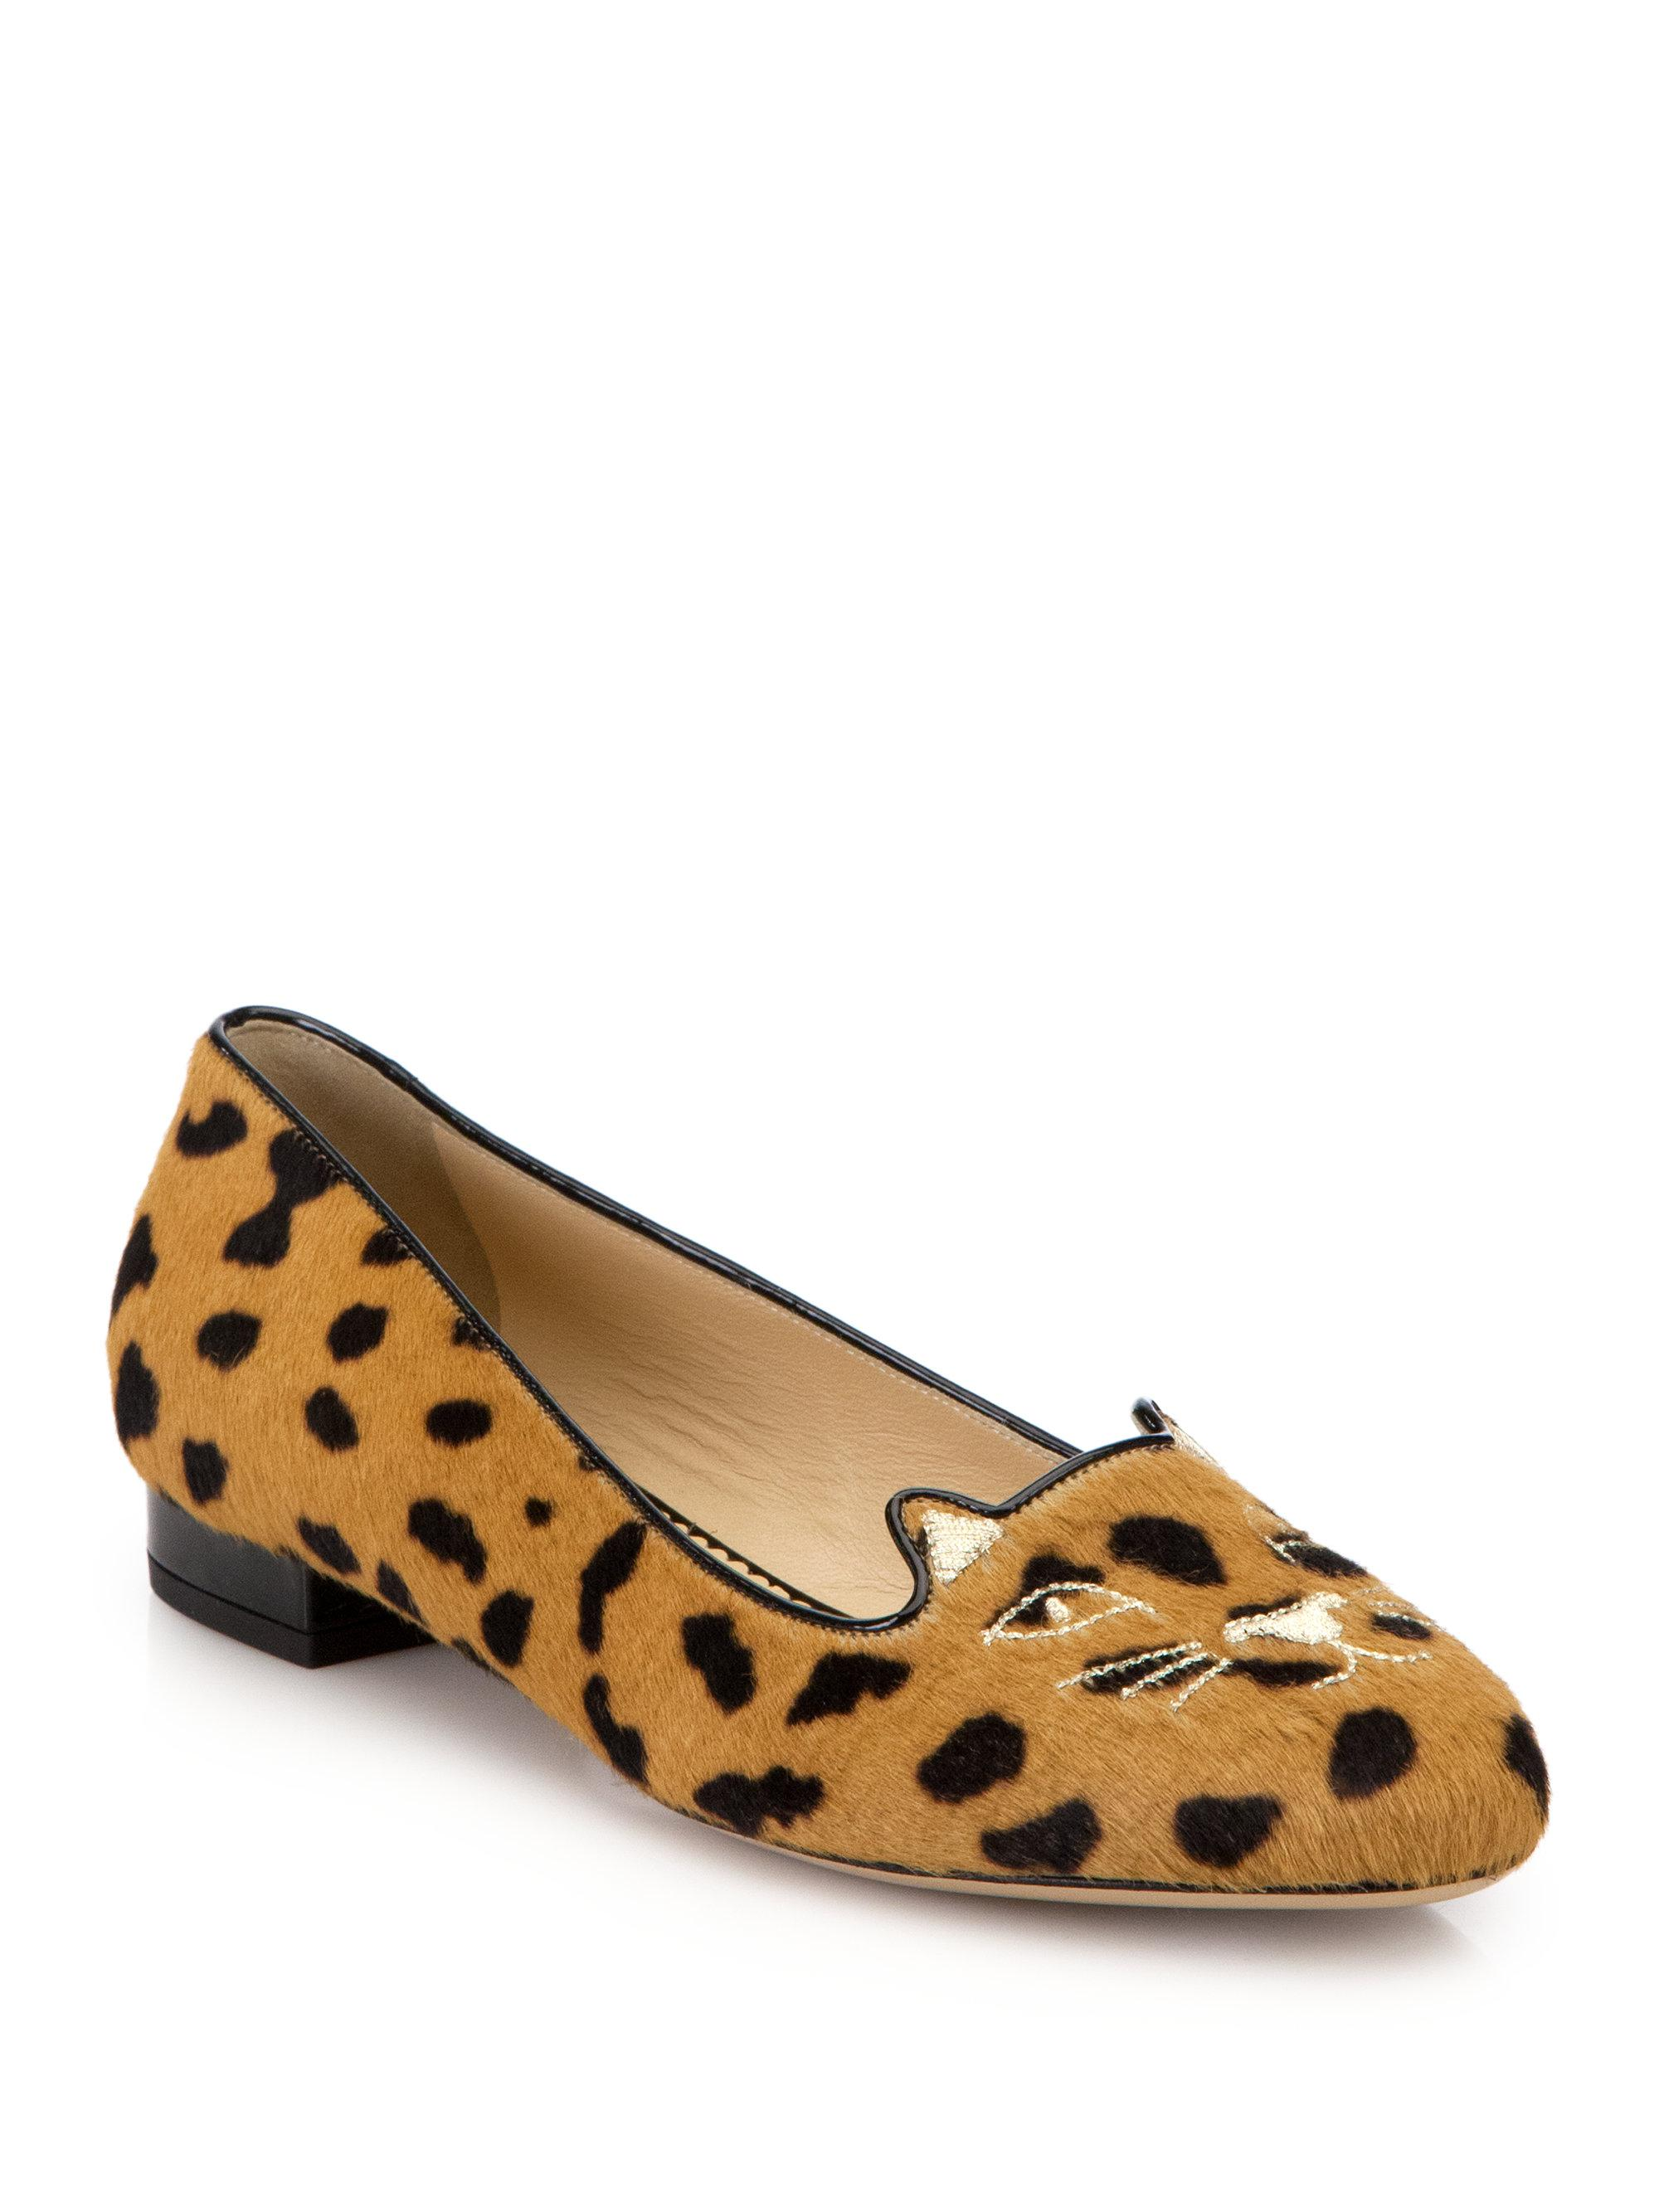 Charlotte Olympia leopard print ballerina shoes Cheapest cheap online largest supplier sale online sale fast delivery with paypal yVpToM3Q